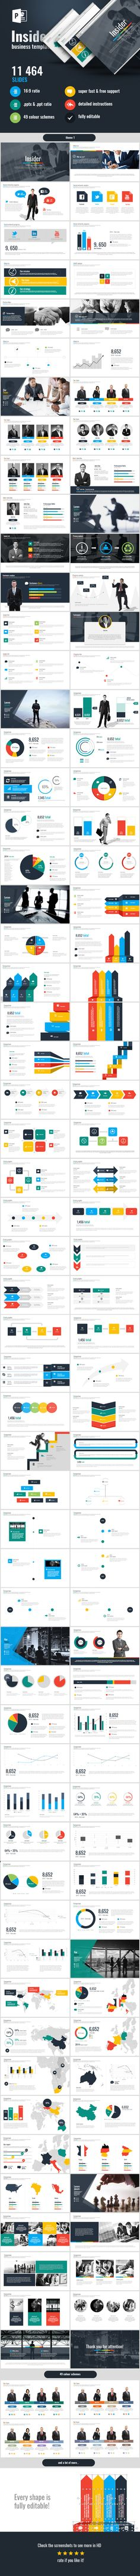 Digital art powerpoint presentation template template digital insider powerpoint presentation template toneelgroepblik